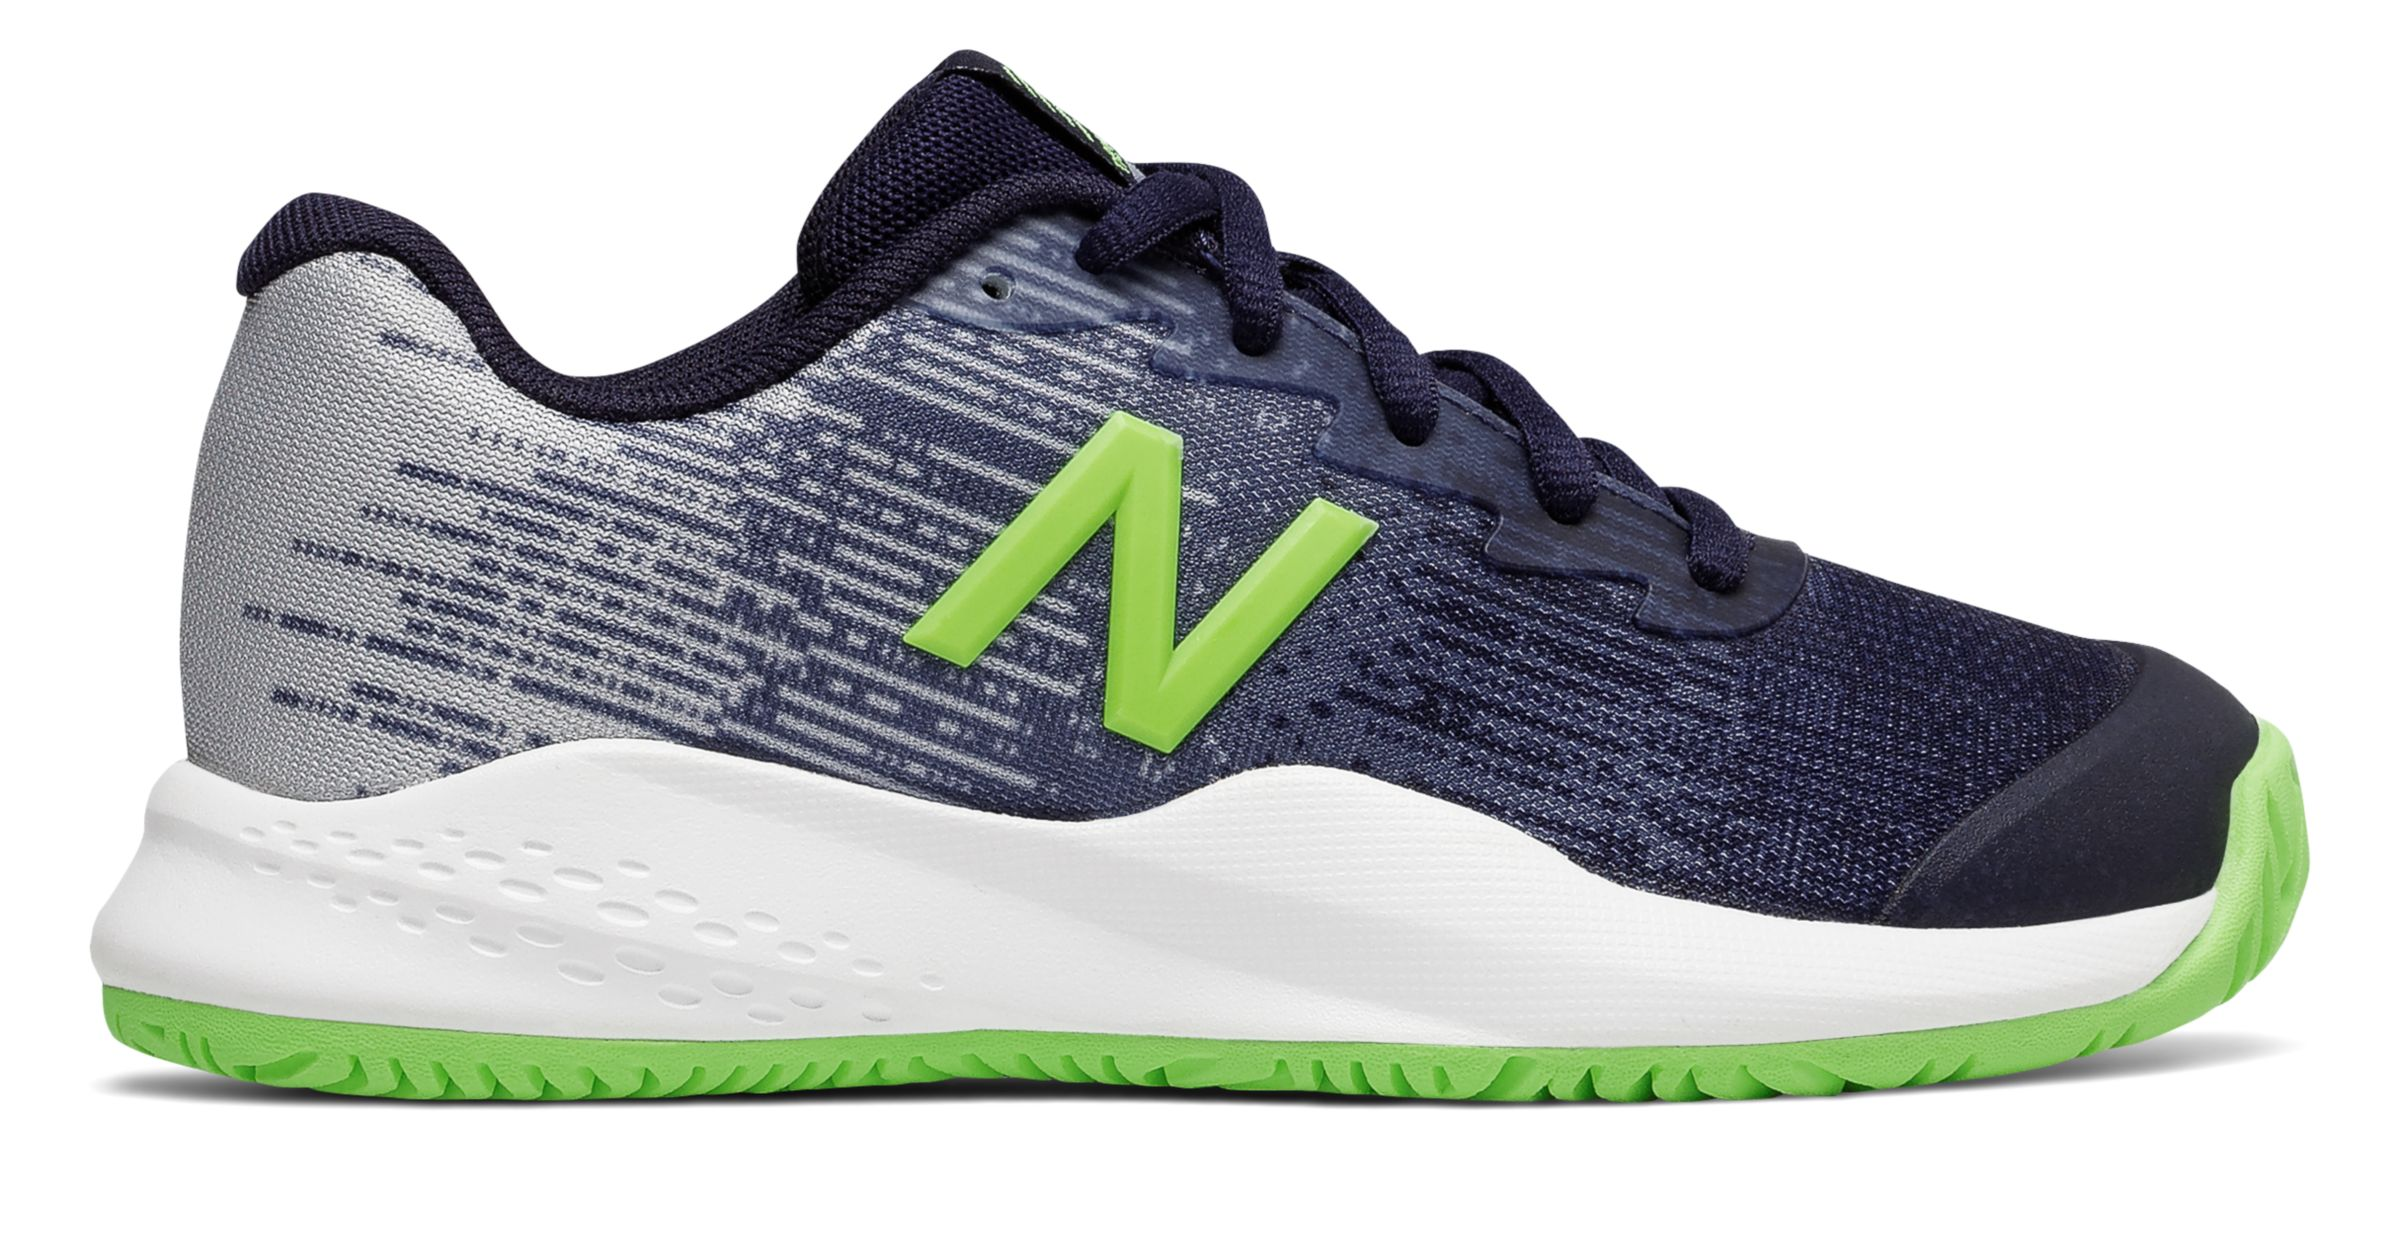 NB New Balance 996v3, Pigment with Light Cyclone & Energy Lime